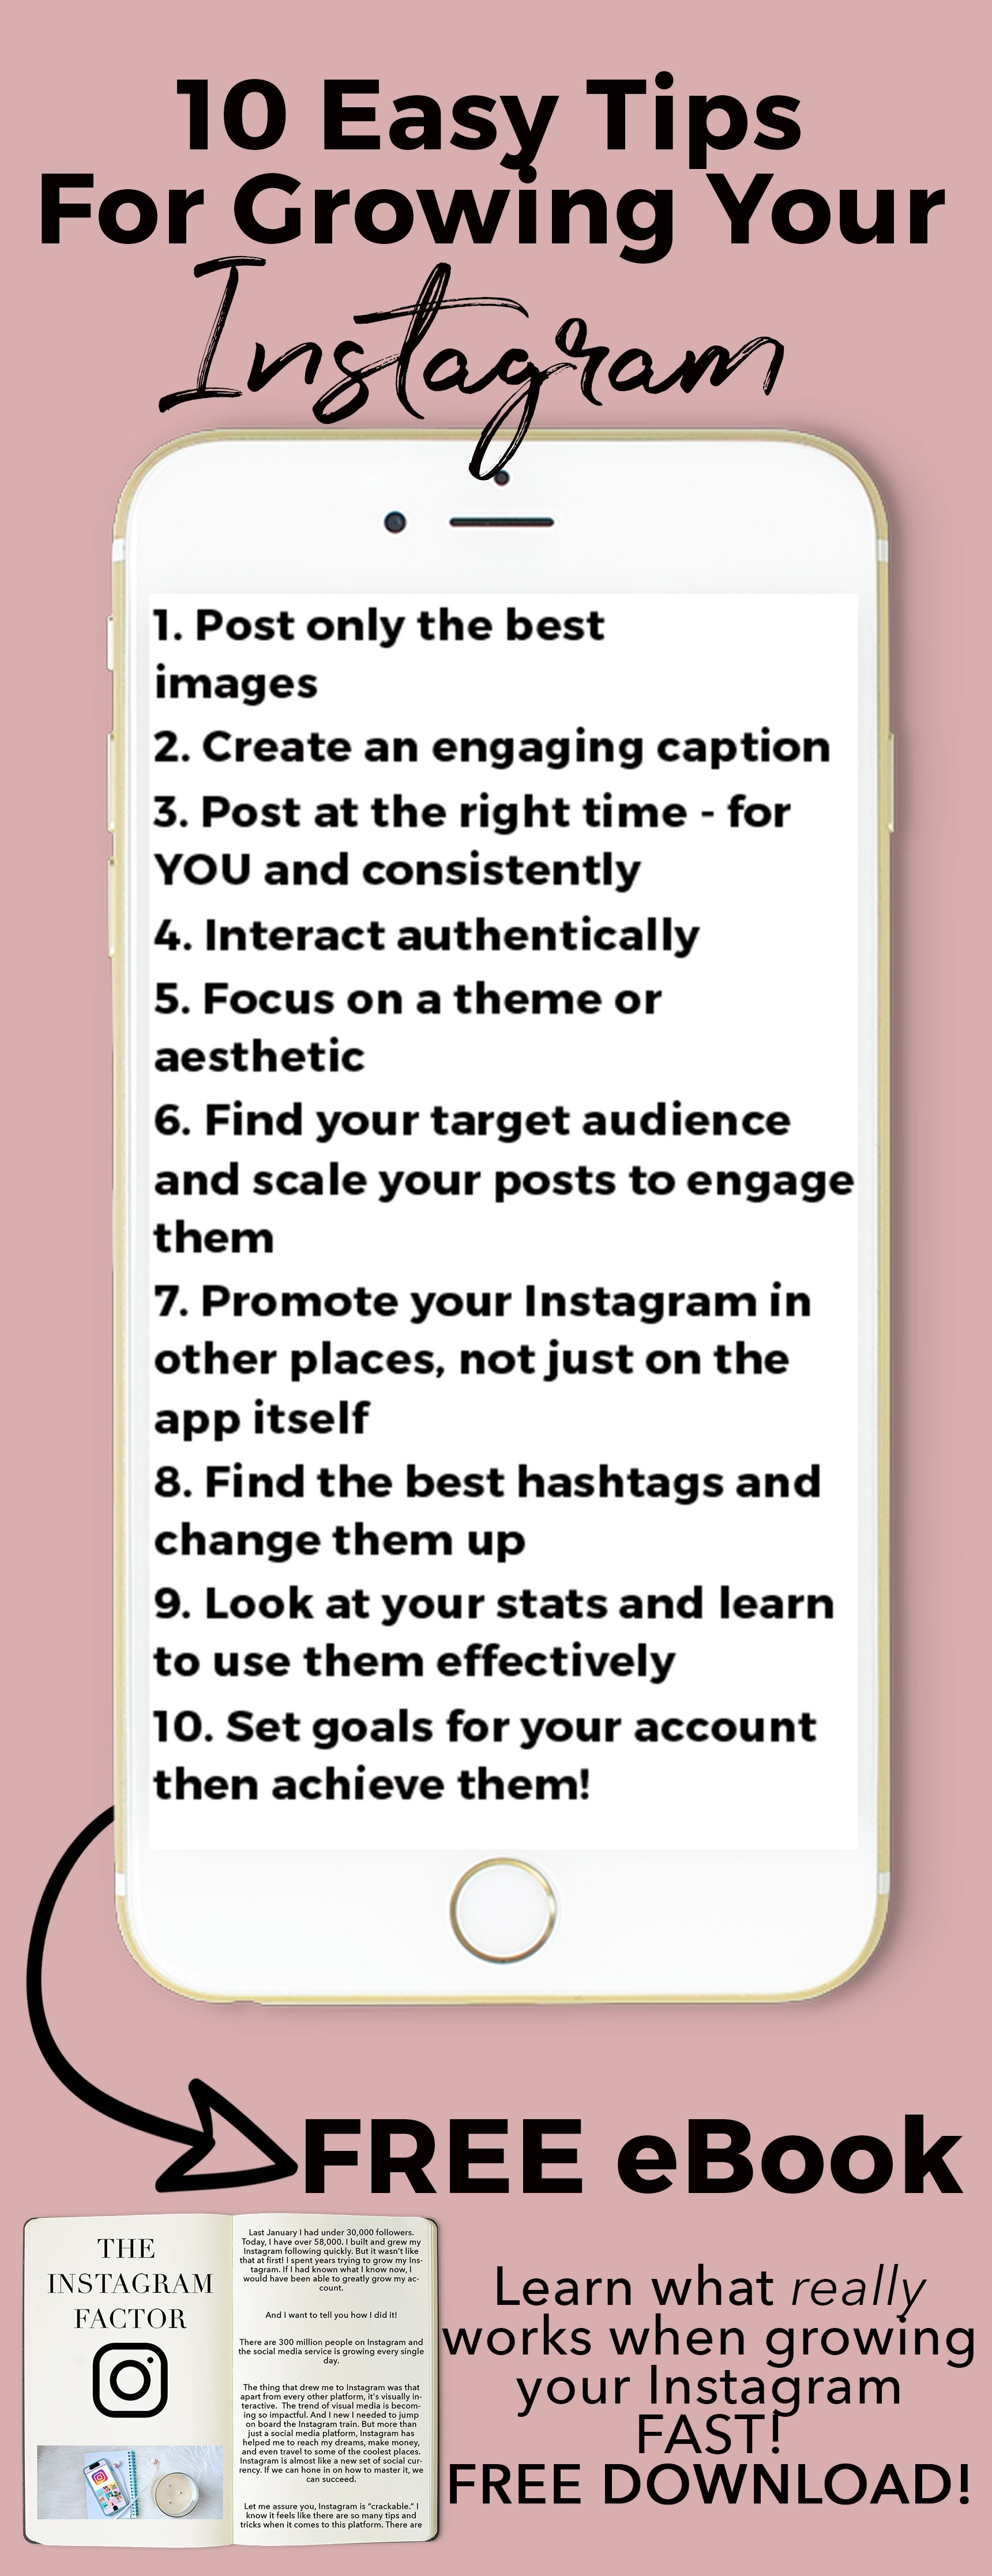 10 tips for growing your instagram learn how i tripled my instagram 10 tips for growing your instagram learn how i tripled my instagram following with fandeluxe Image collections